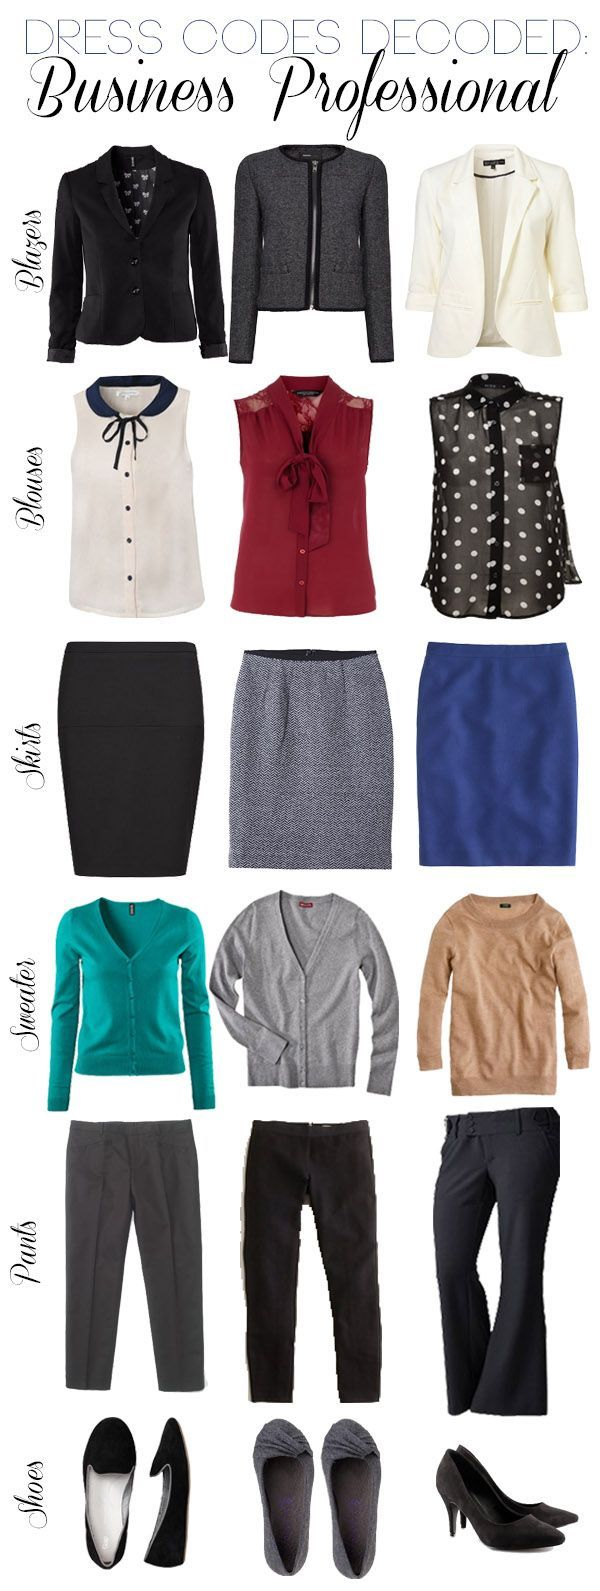 Dress Codes for the Business Professional - La Petite Fashionista: Dress Codes Decoded: Business Professional Attire